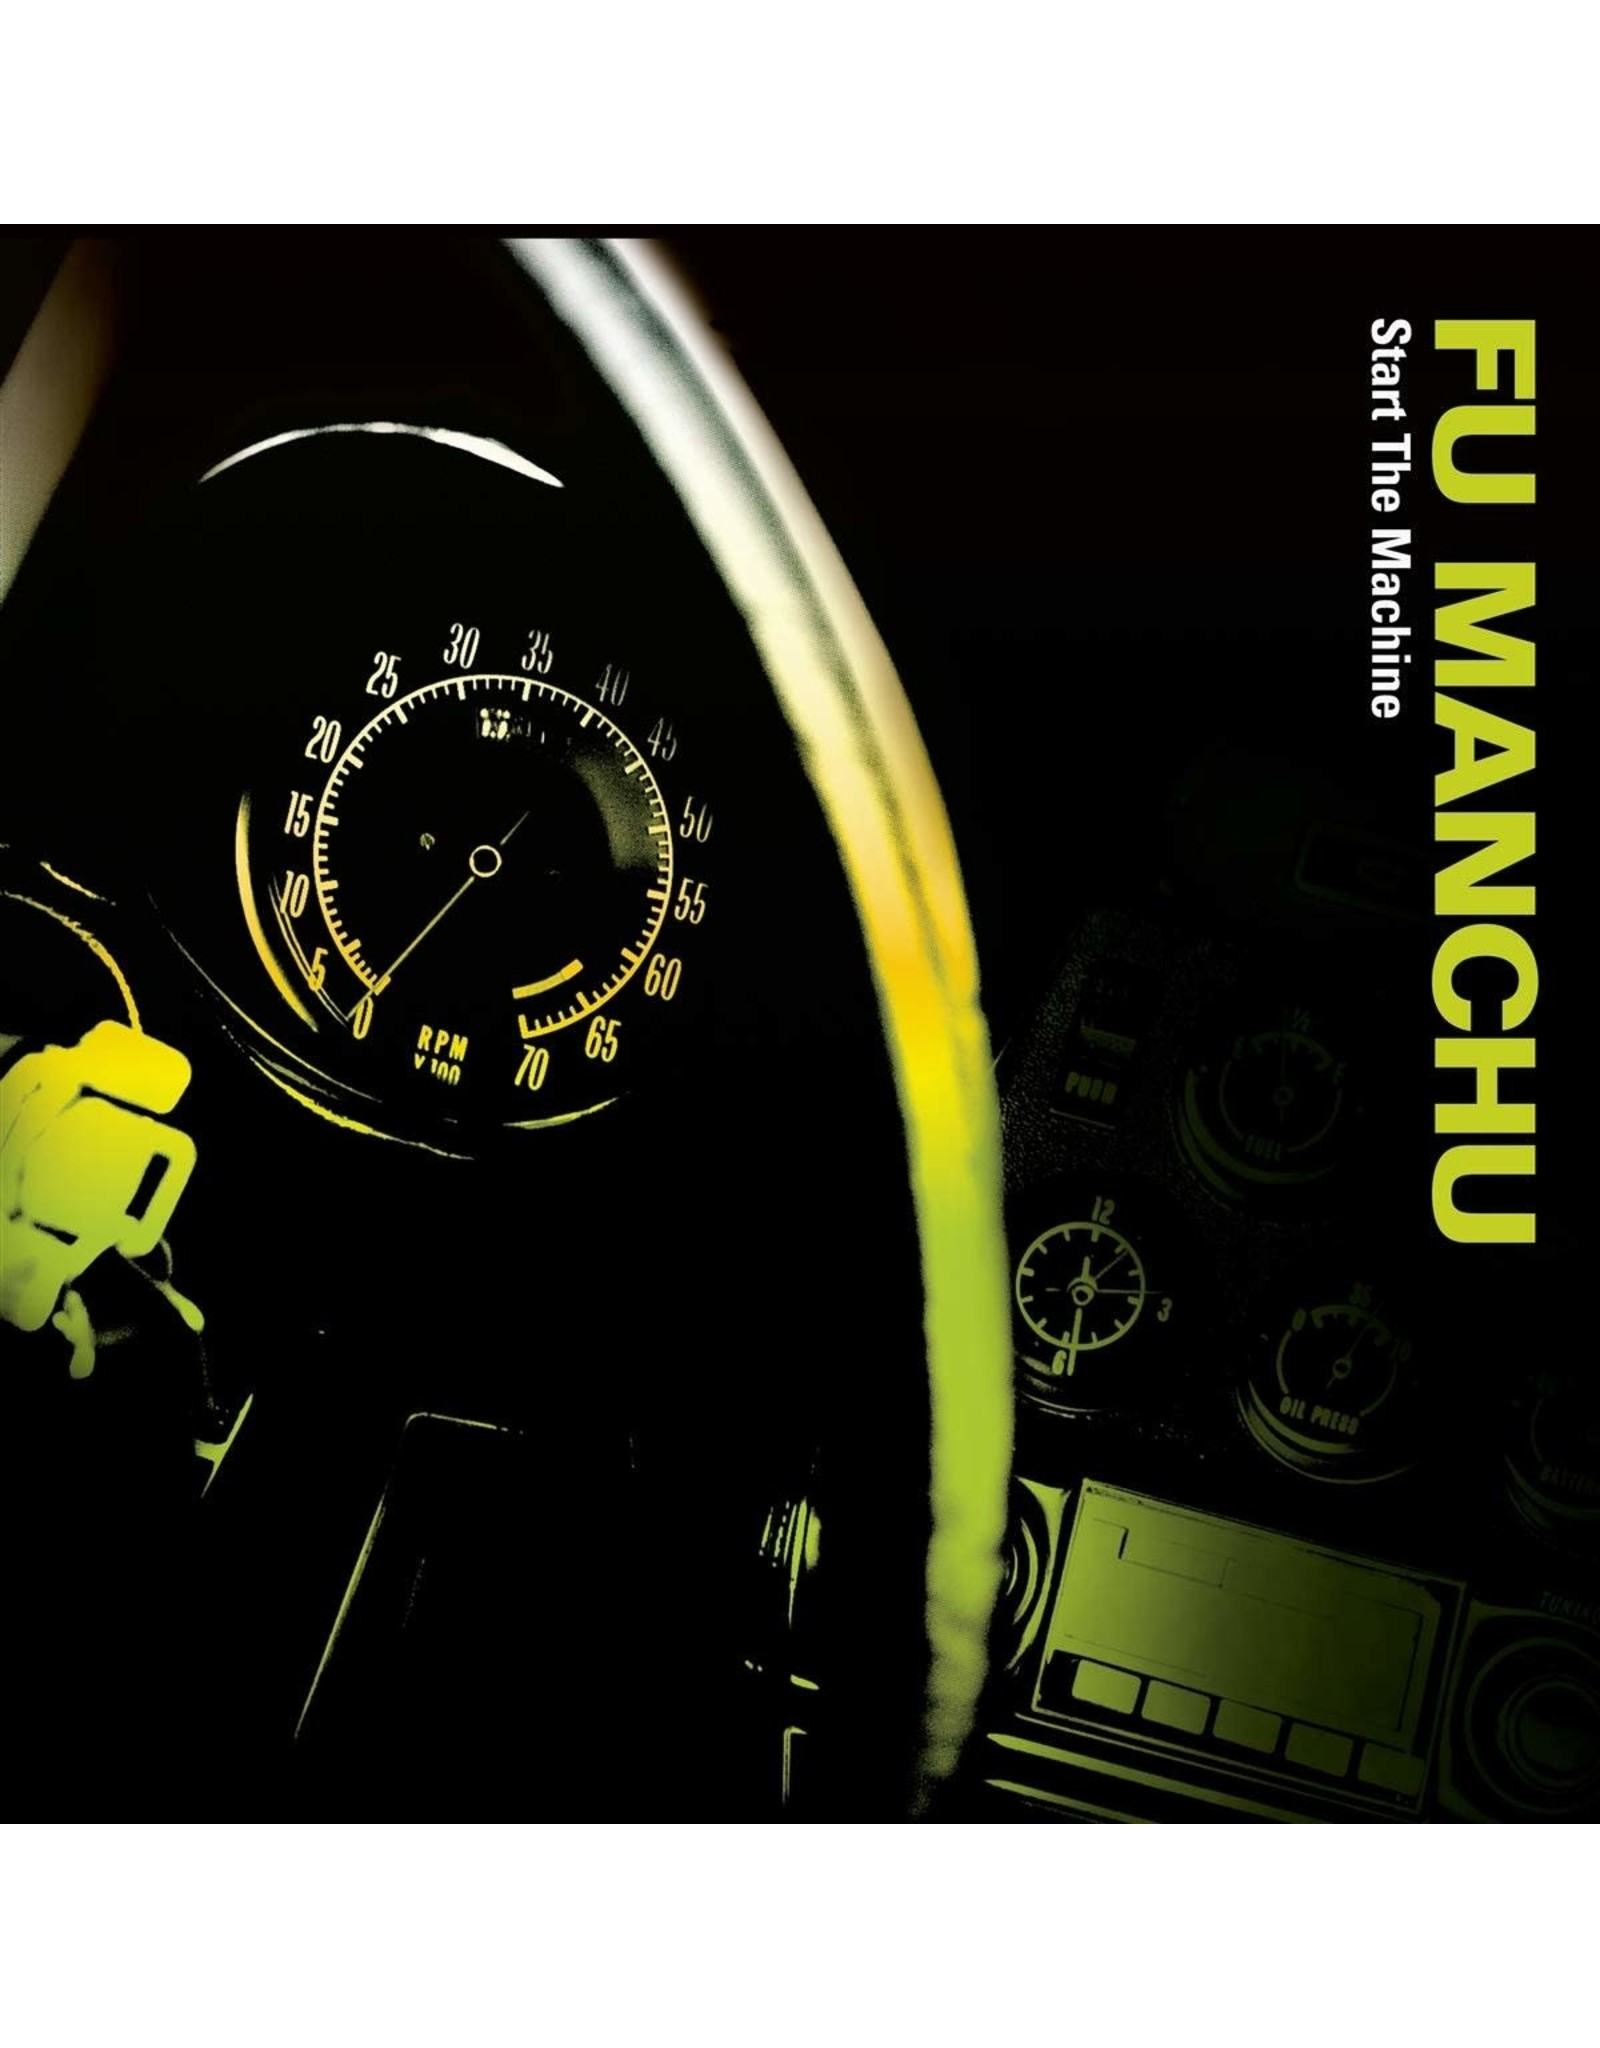 Fu Manchu - Start The Machine (yellow vinyl)